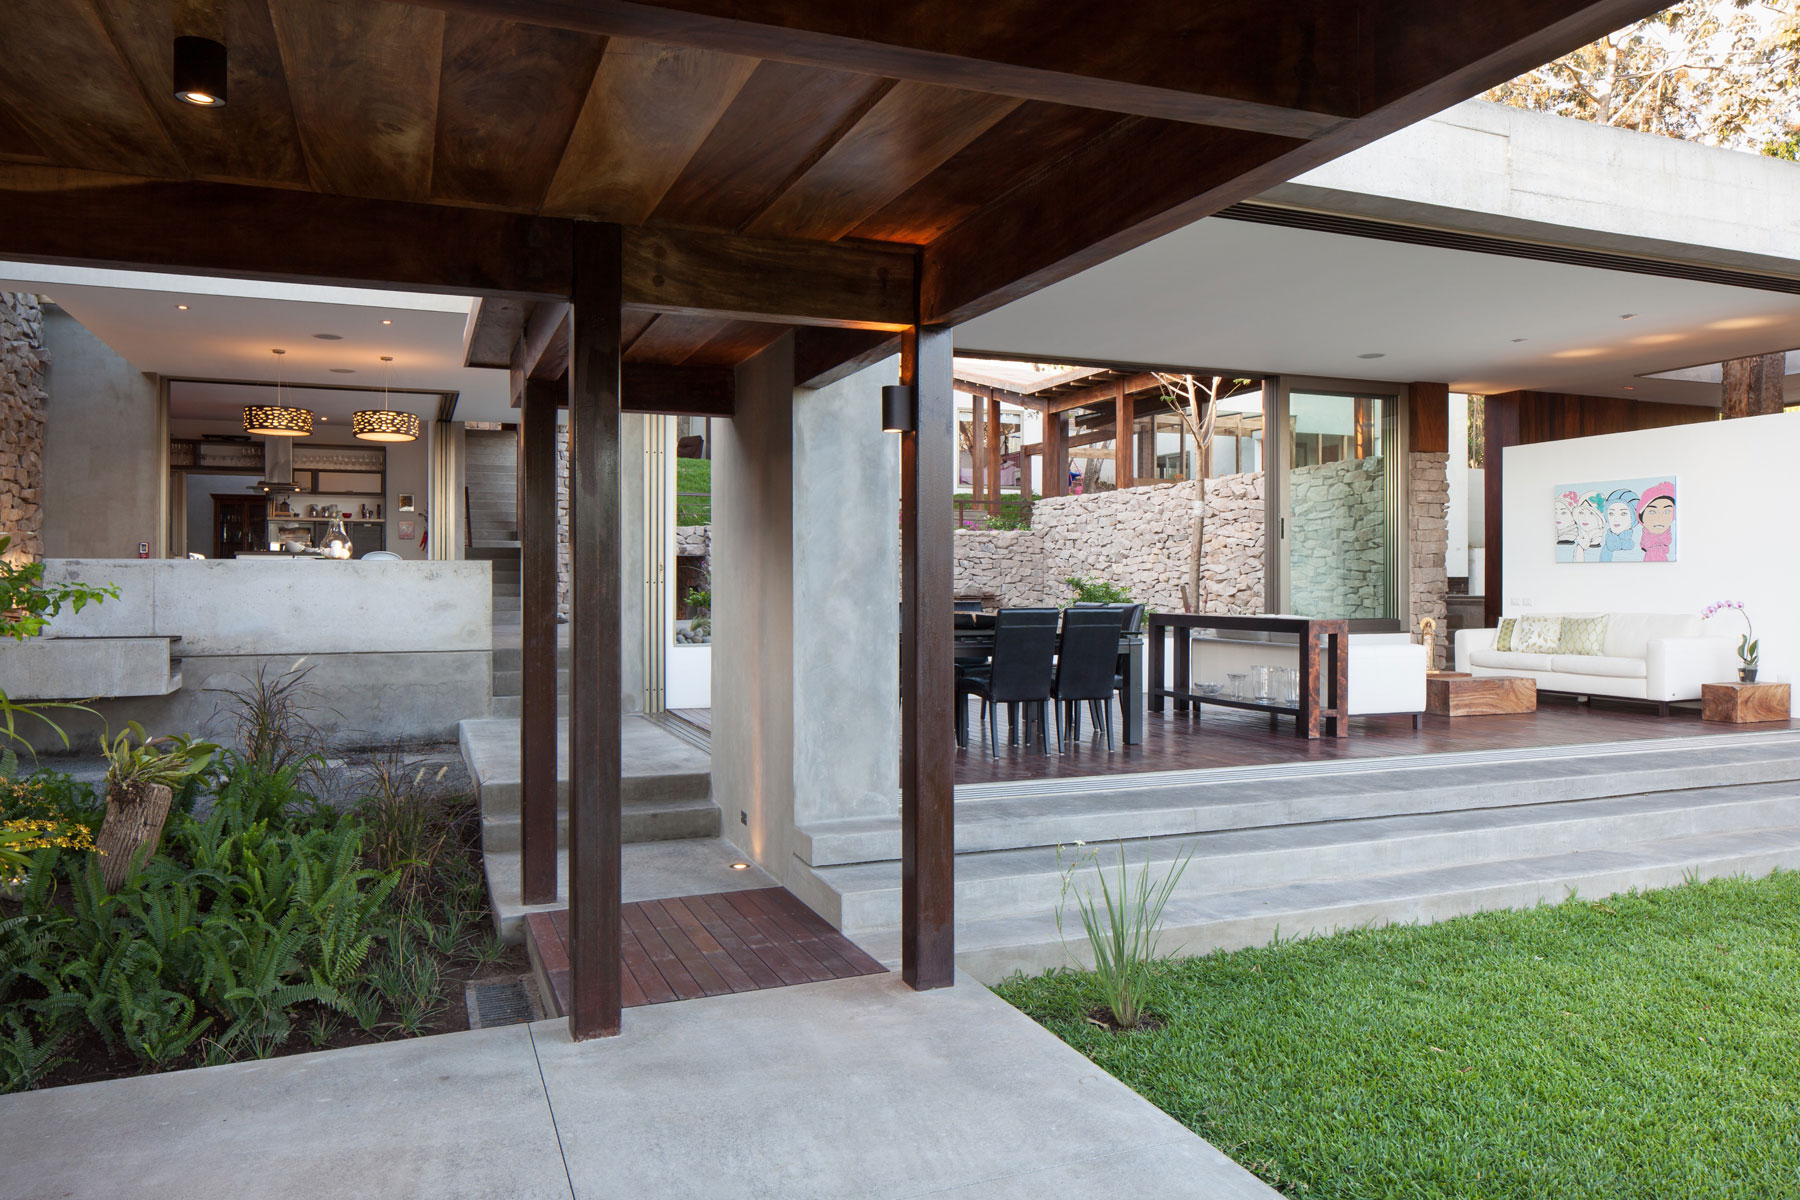 Modern rustic sensation of garden house in el salvador by for Home design el salvador